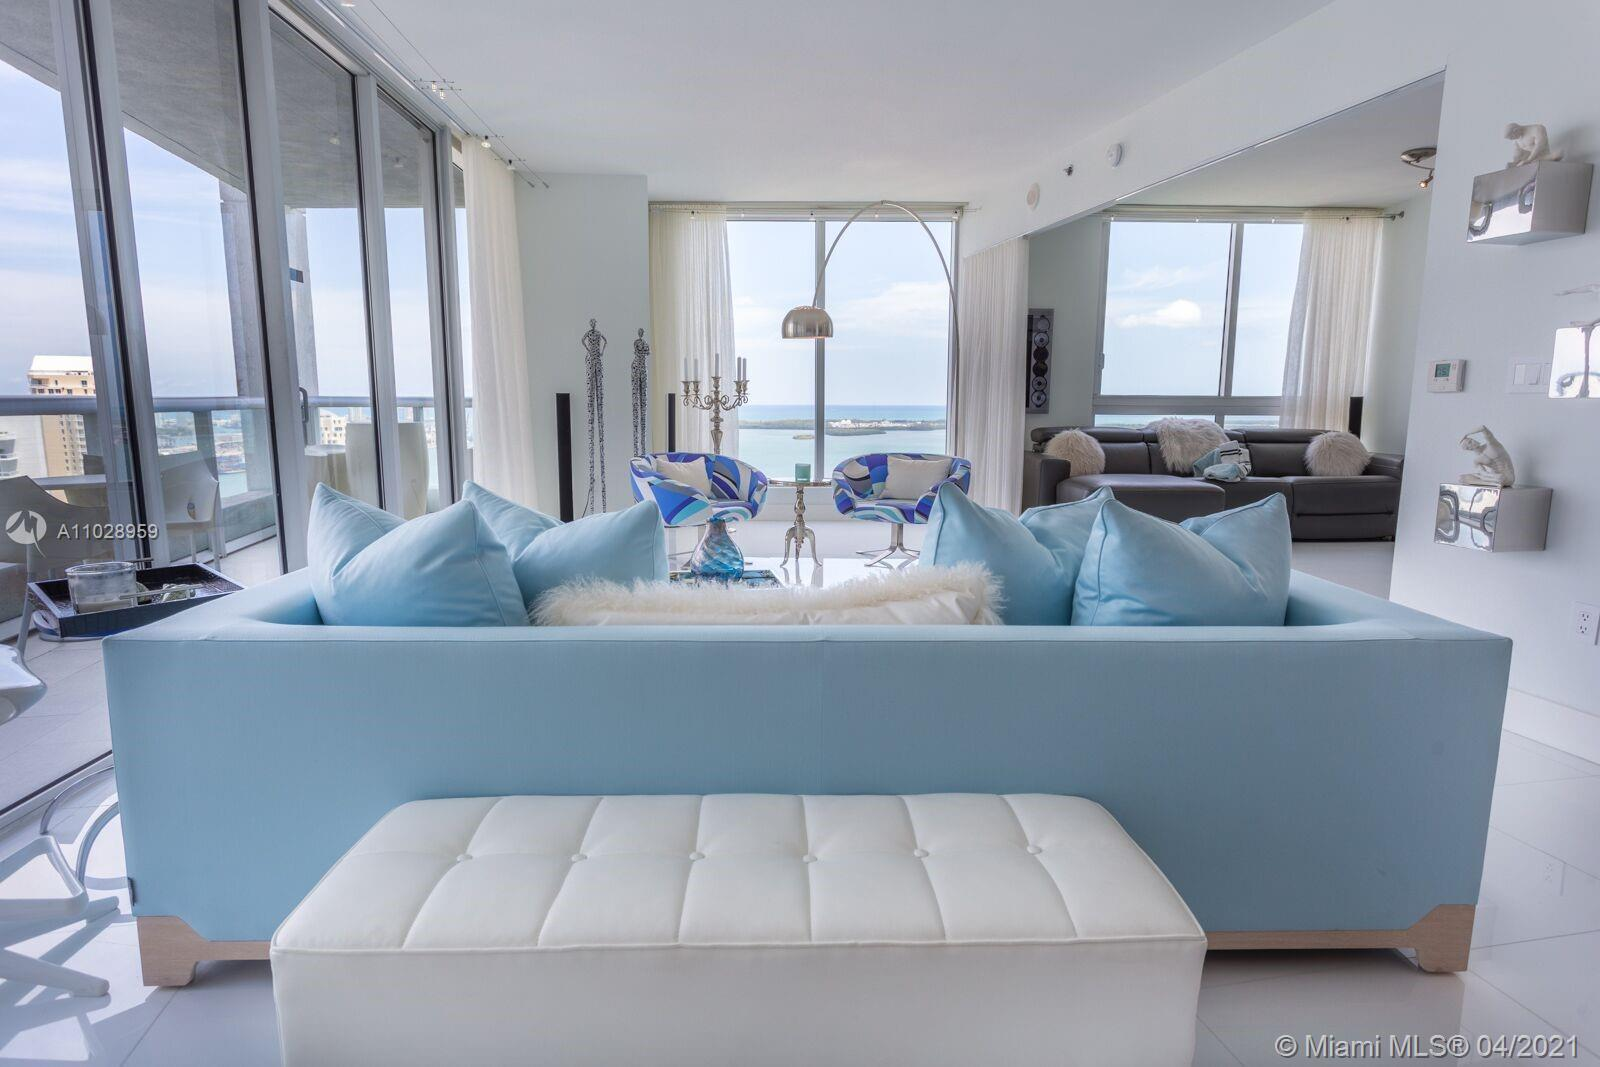 """""""OWNER FINANCING"""". Crown Jewel in Icon 2. Desirable Line D/Corner unit with 1654 sqft on 42nd floor. Spectacular panoramic views of Port of Miami, Miami Beach & Key Biscayne. Luxuriously updated with the finest of features. A 2/2 with beautiful polished white porcelain floors, open concept space & large den/wet bar. Gourmet kitchen featuring exquisite marble tops w/state of the art Wolf appliances. Washer and Dryer in unit and Appliances Warranty Included. 5 Star amenity living with largest eternity pool in all Brickell. 5 Star Restaurants with World Class Icon Brickell Spa & Gym."""